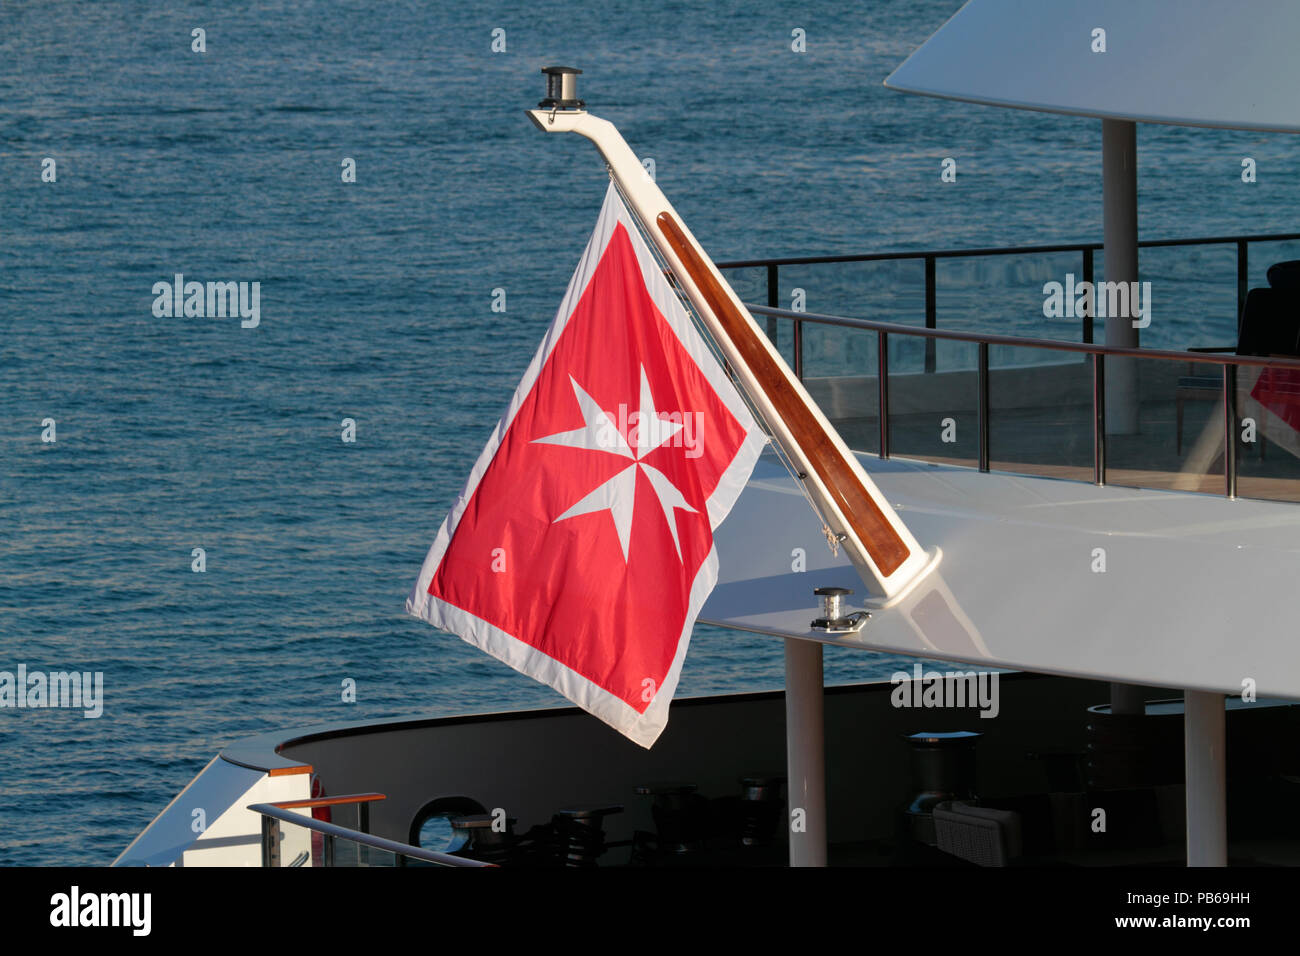 The merchant flag or civil ensign of Malta on the stern of a ship. Malta's maritime shipping register is one of the largest in the EU. - Stock Image